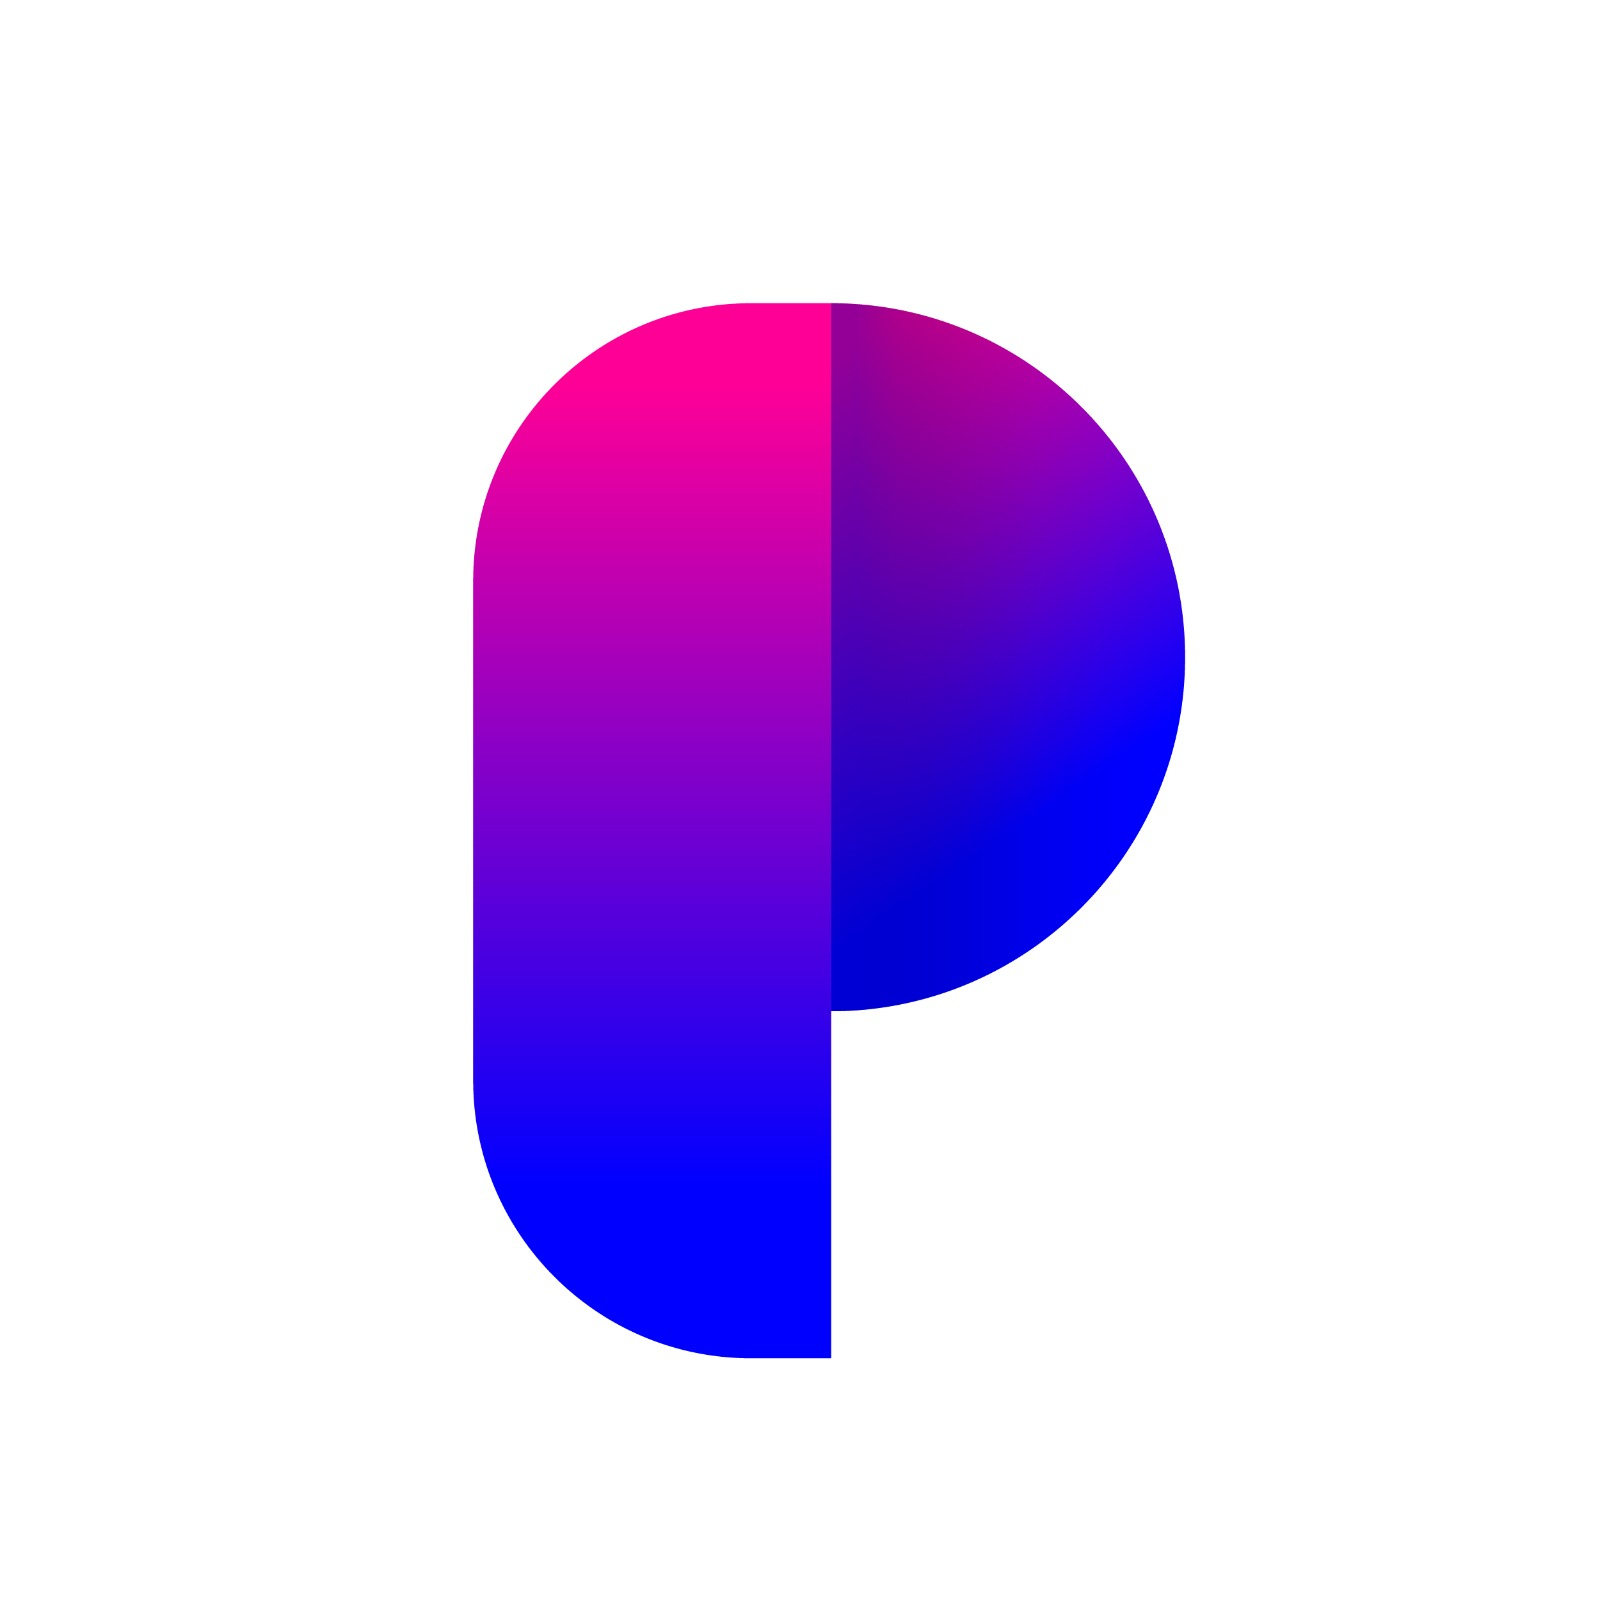 Prof en poche logo for Stripe